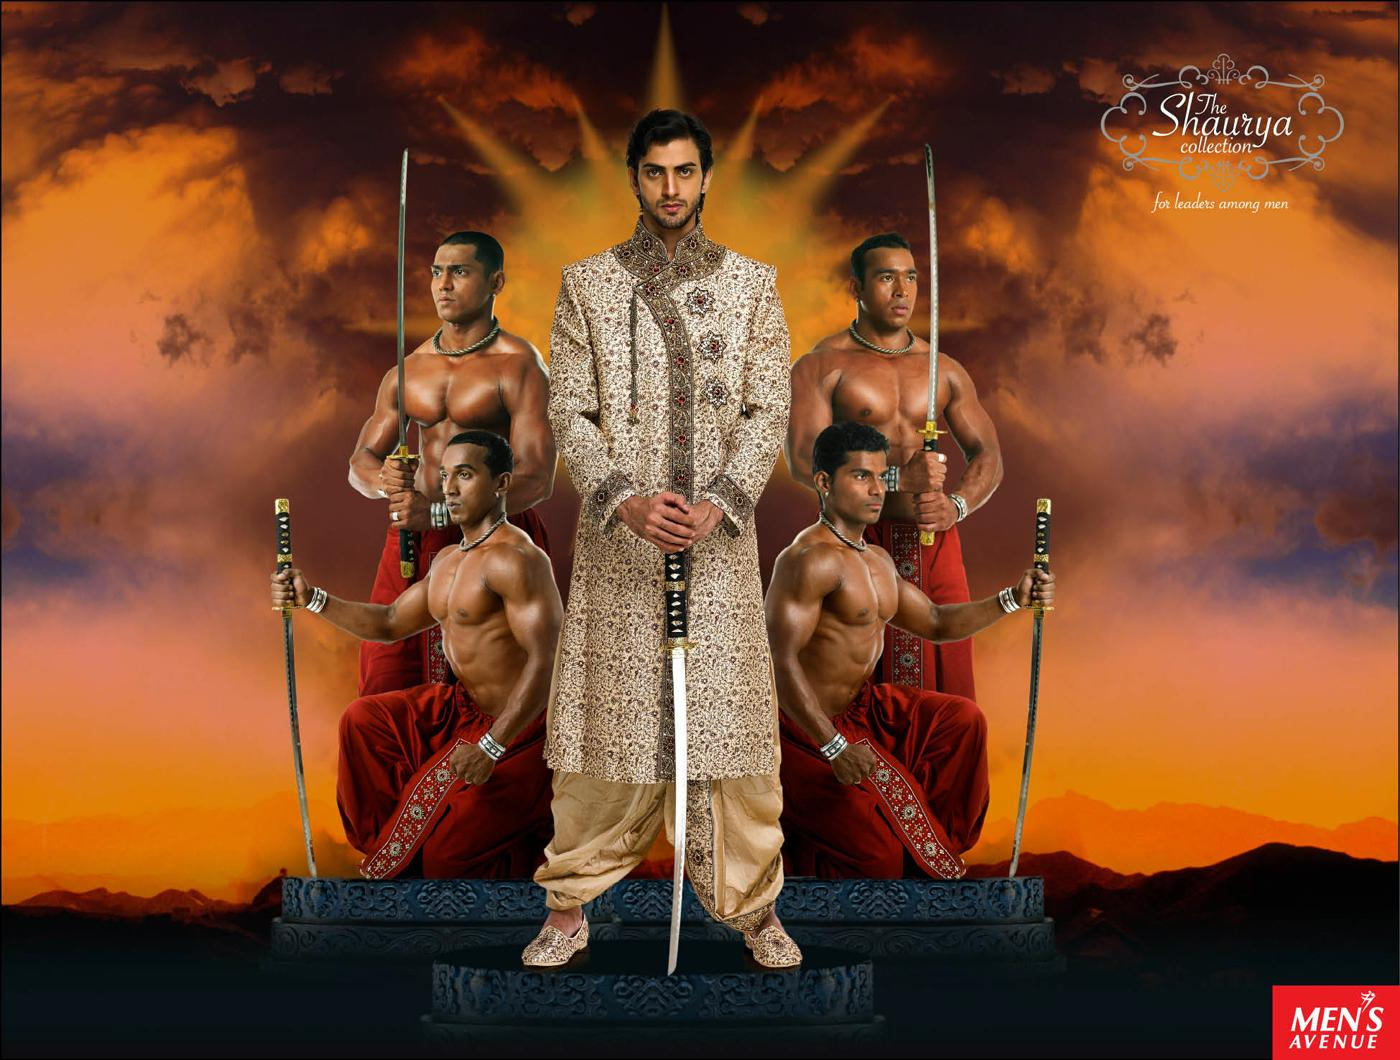 Men's Avenue Print Ad -  The Shaurya Collection, 1